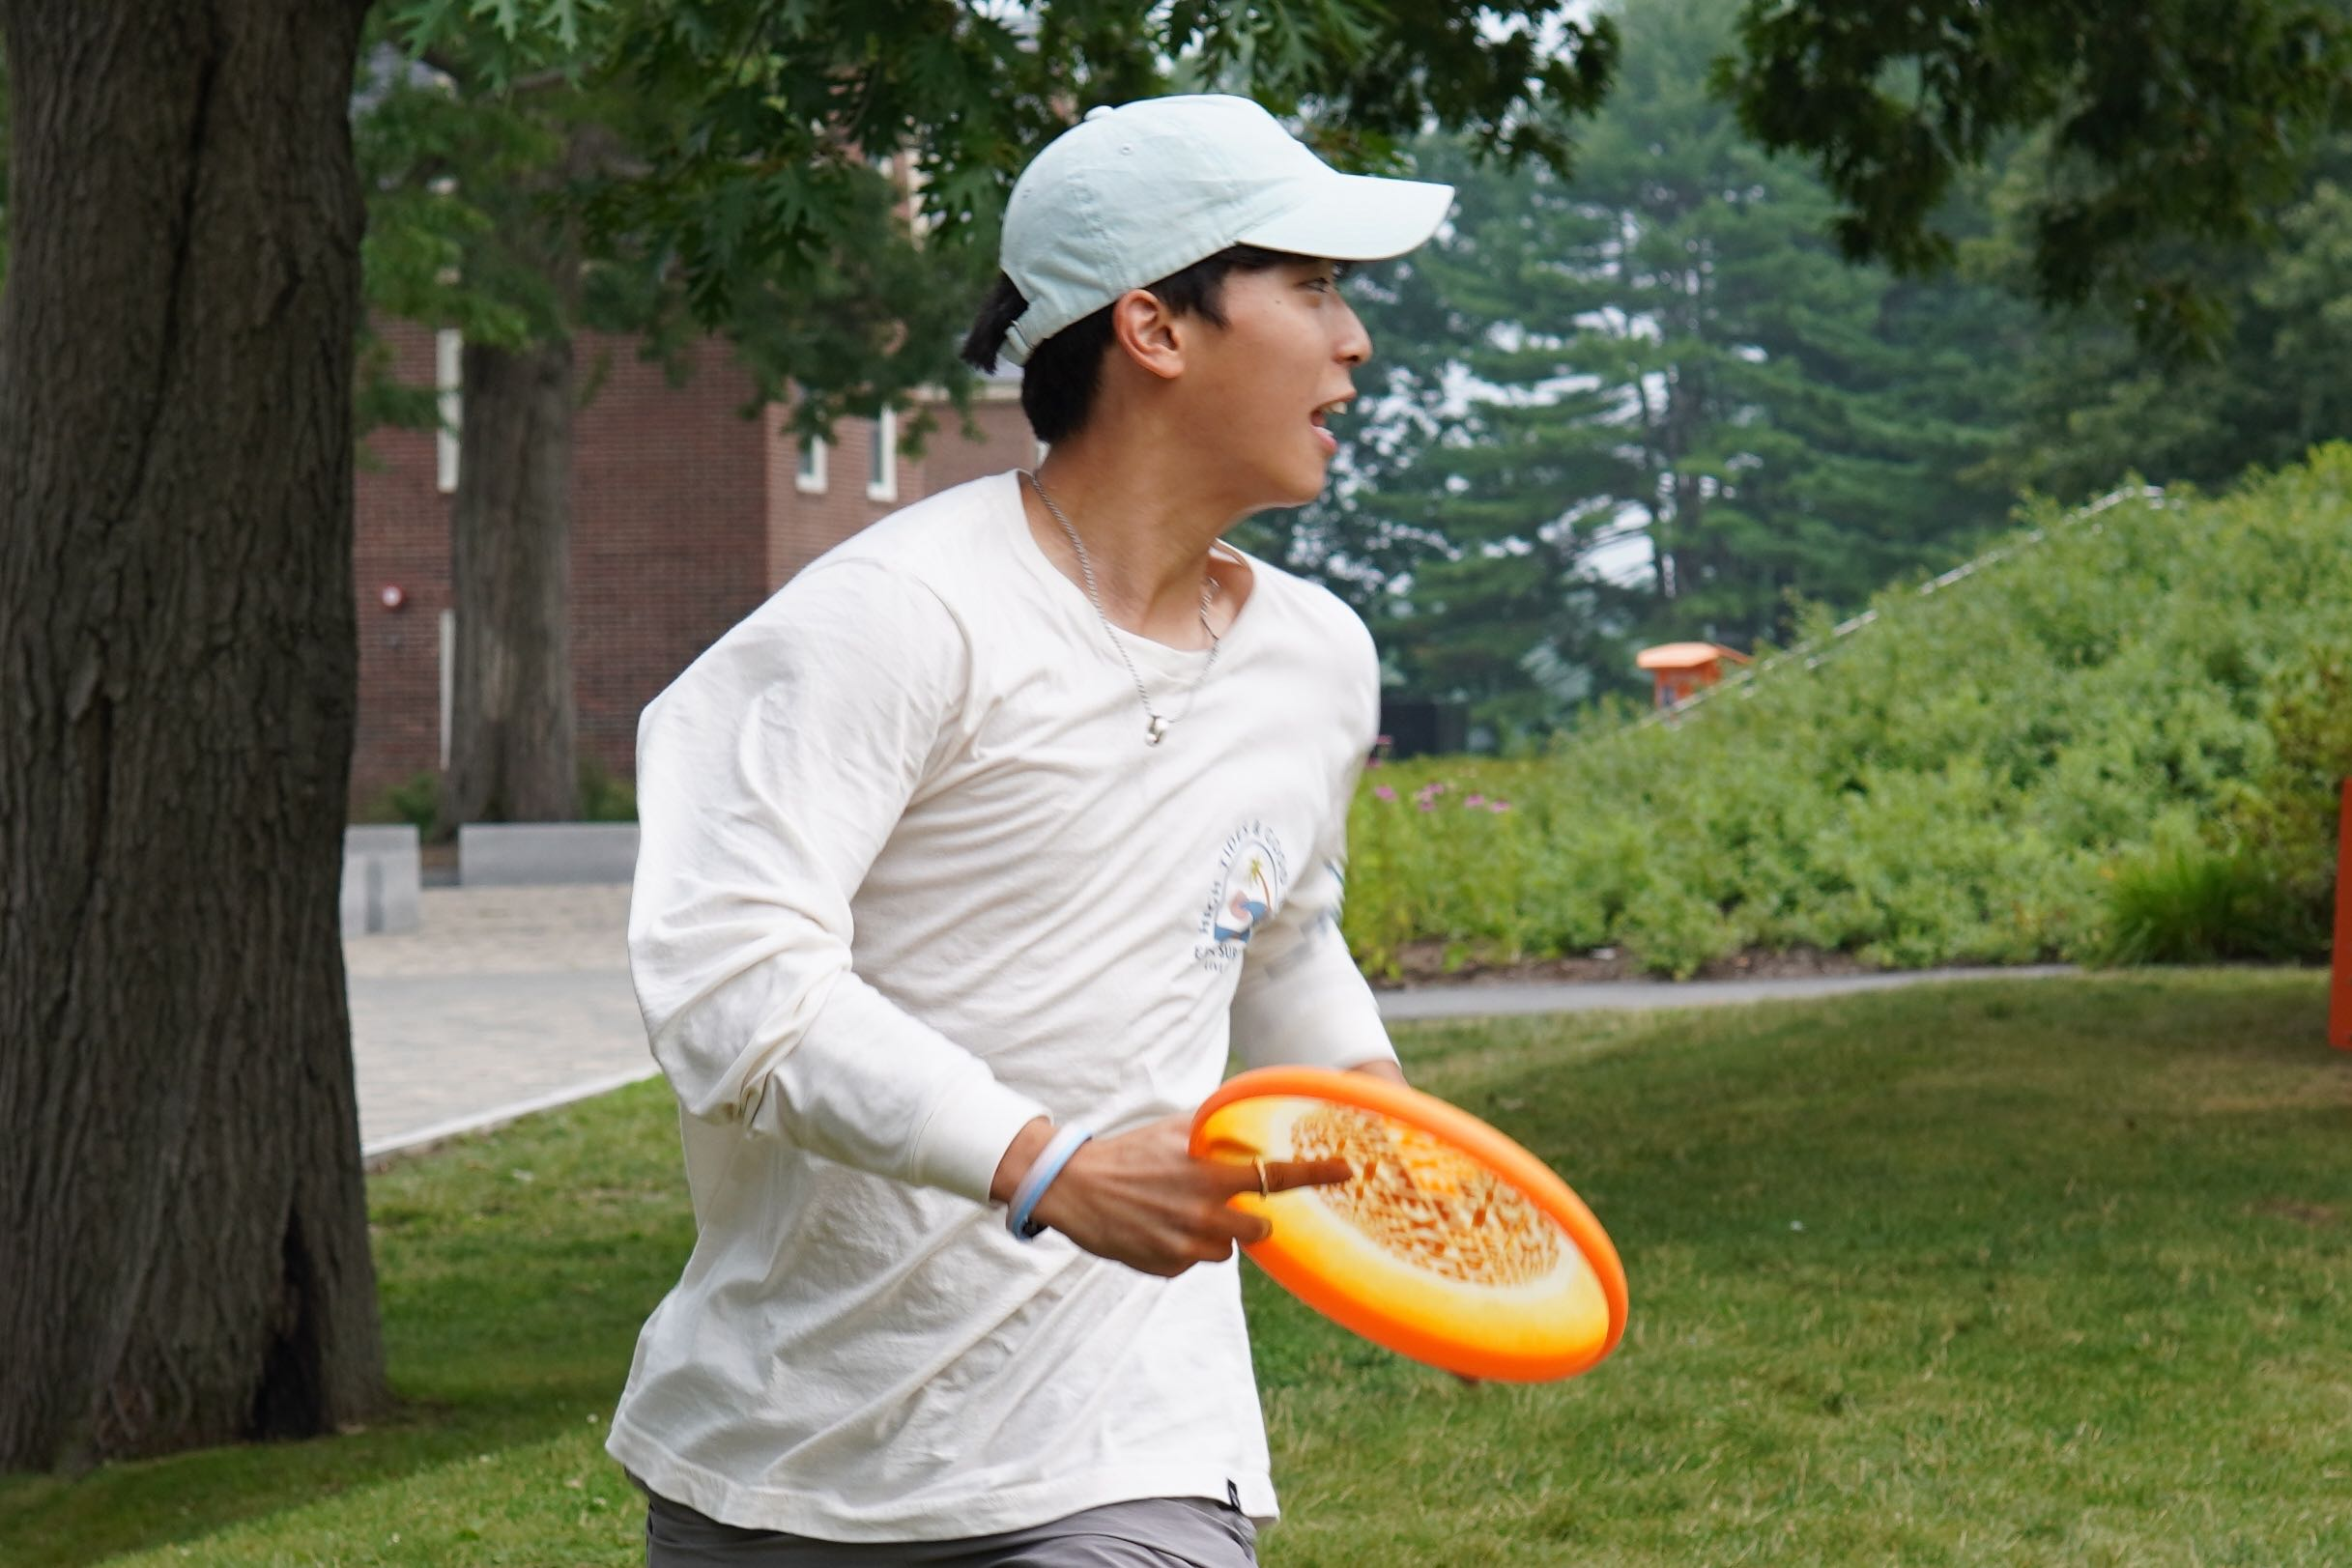 A student jogs to a stop on the quad after catching a frisbee